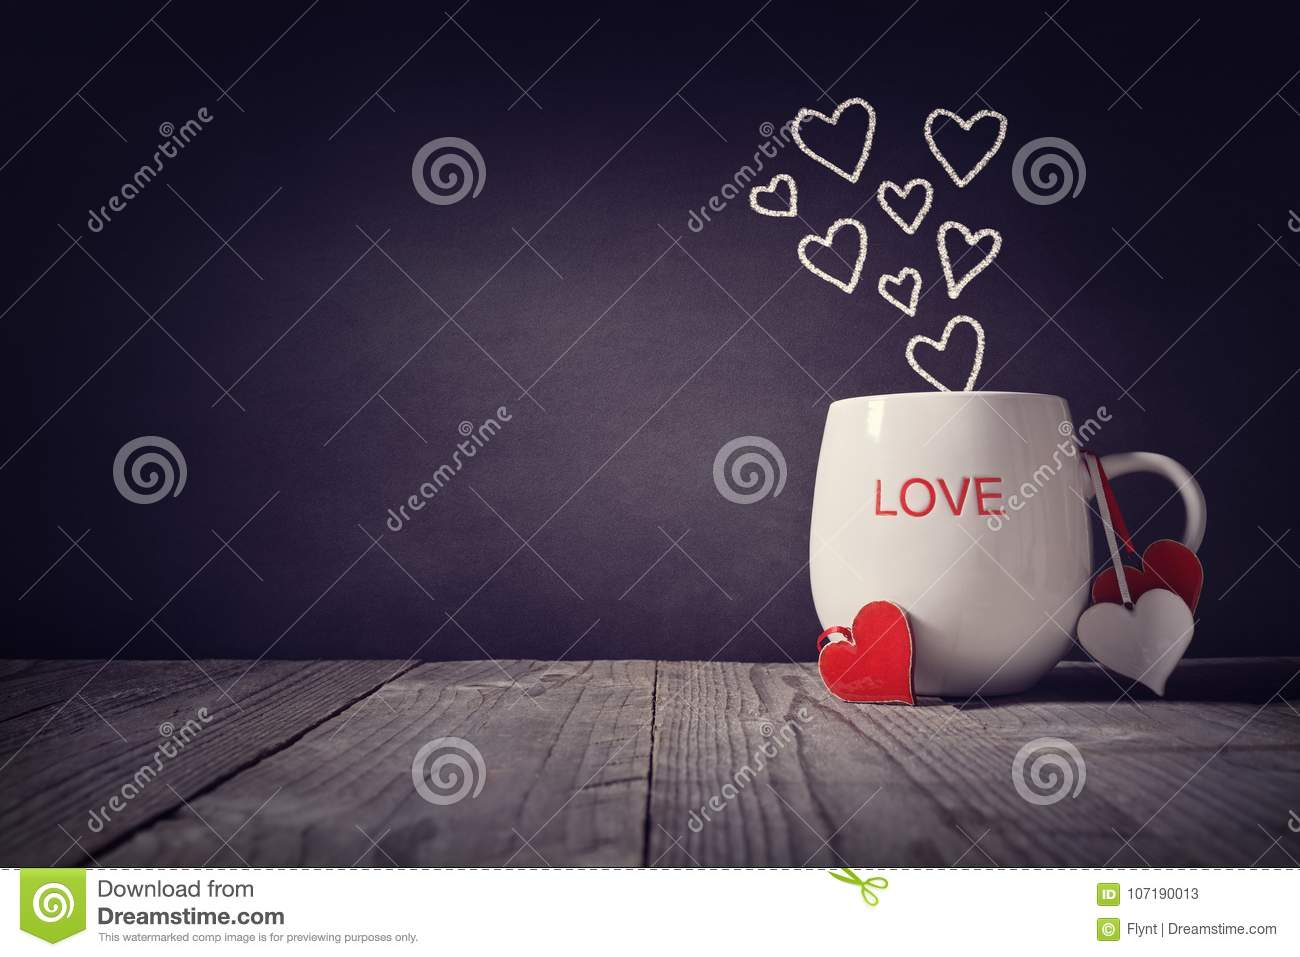 Love written on a mug concept for Valentines day or Mothers day